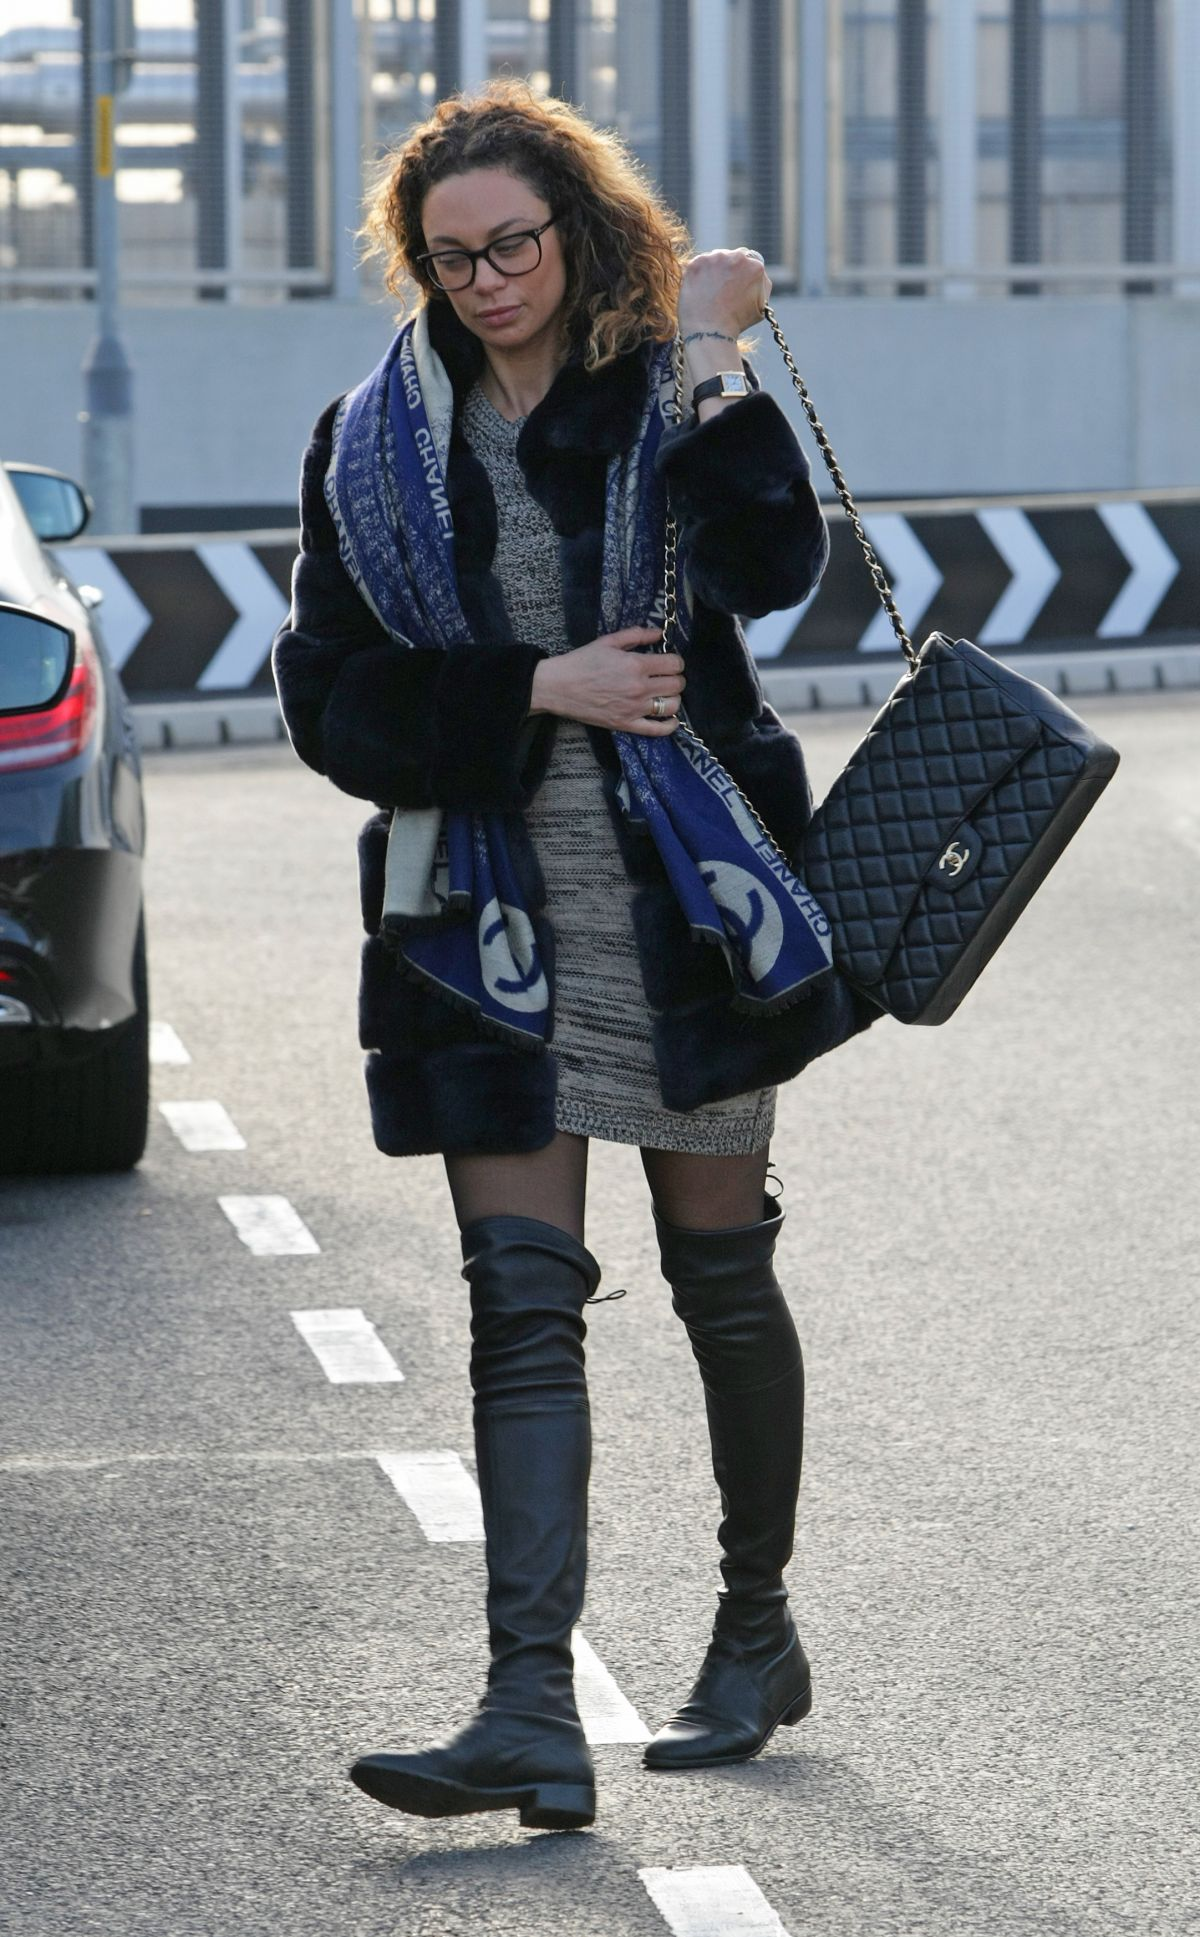 LILLY BECKER at Heathrow Airport in London 11/26/2016